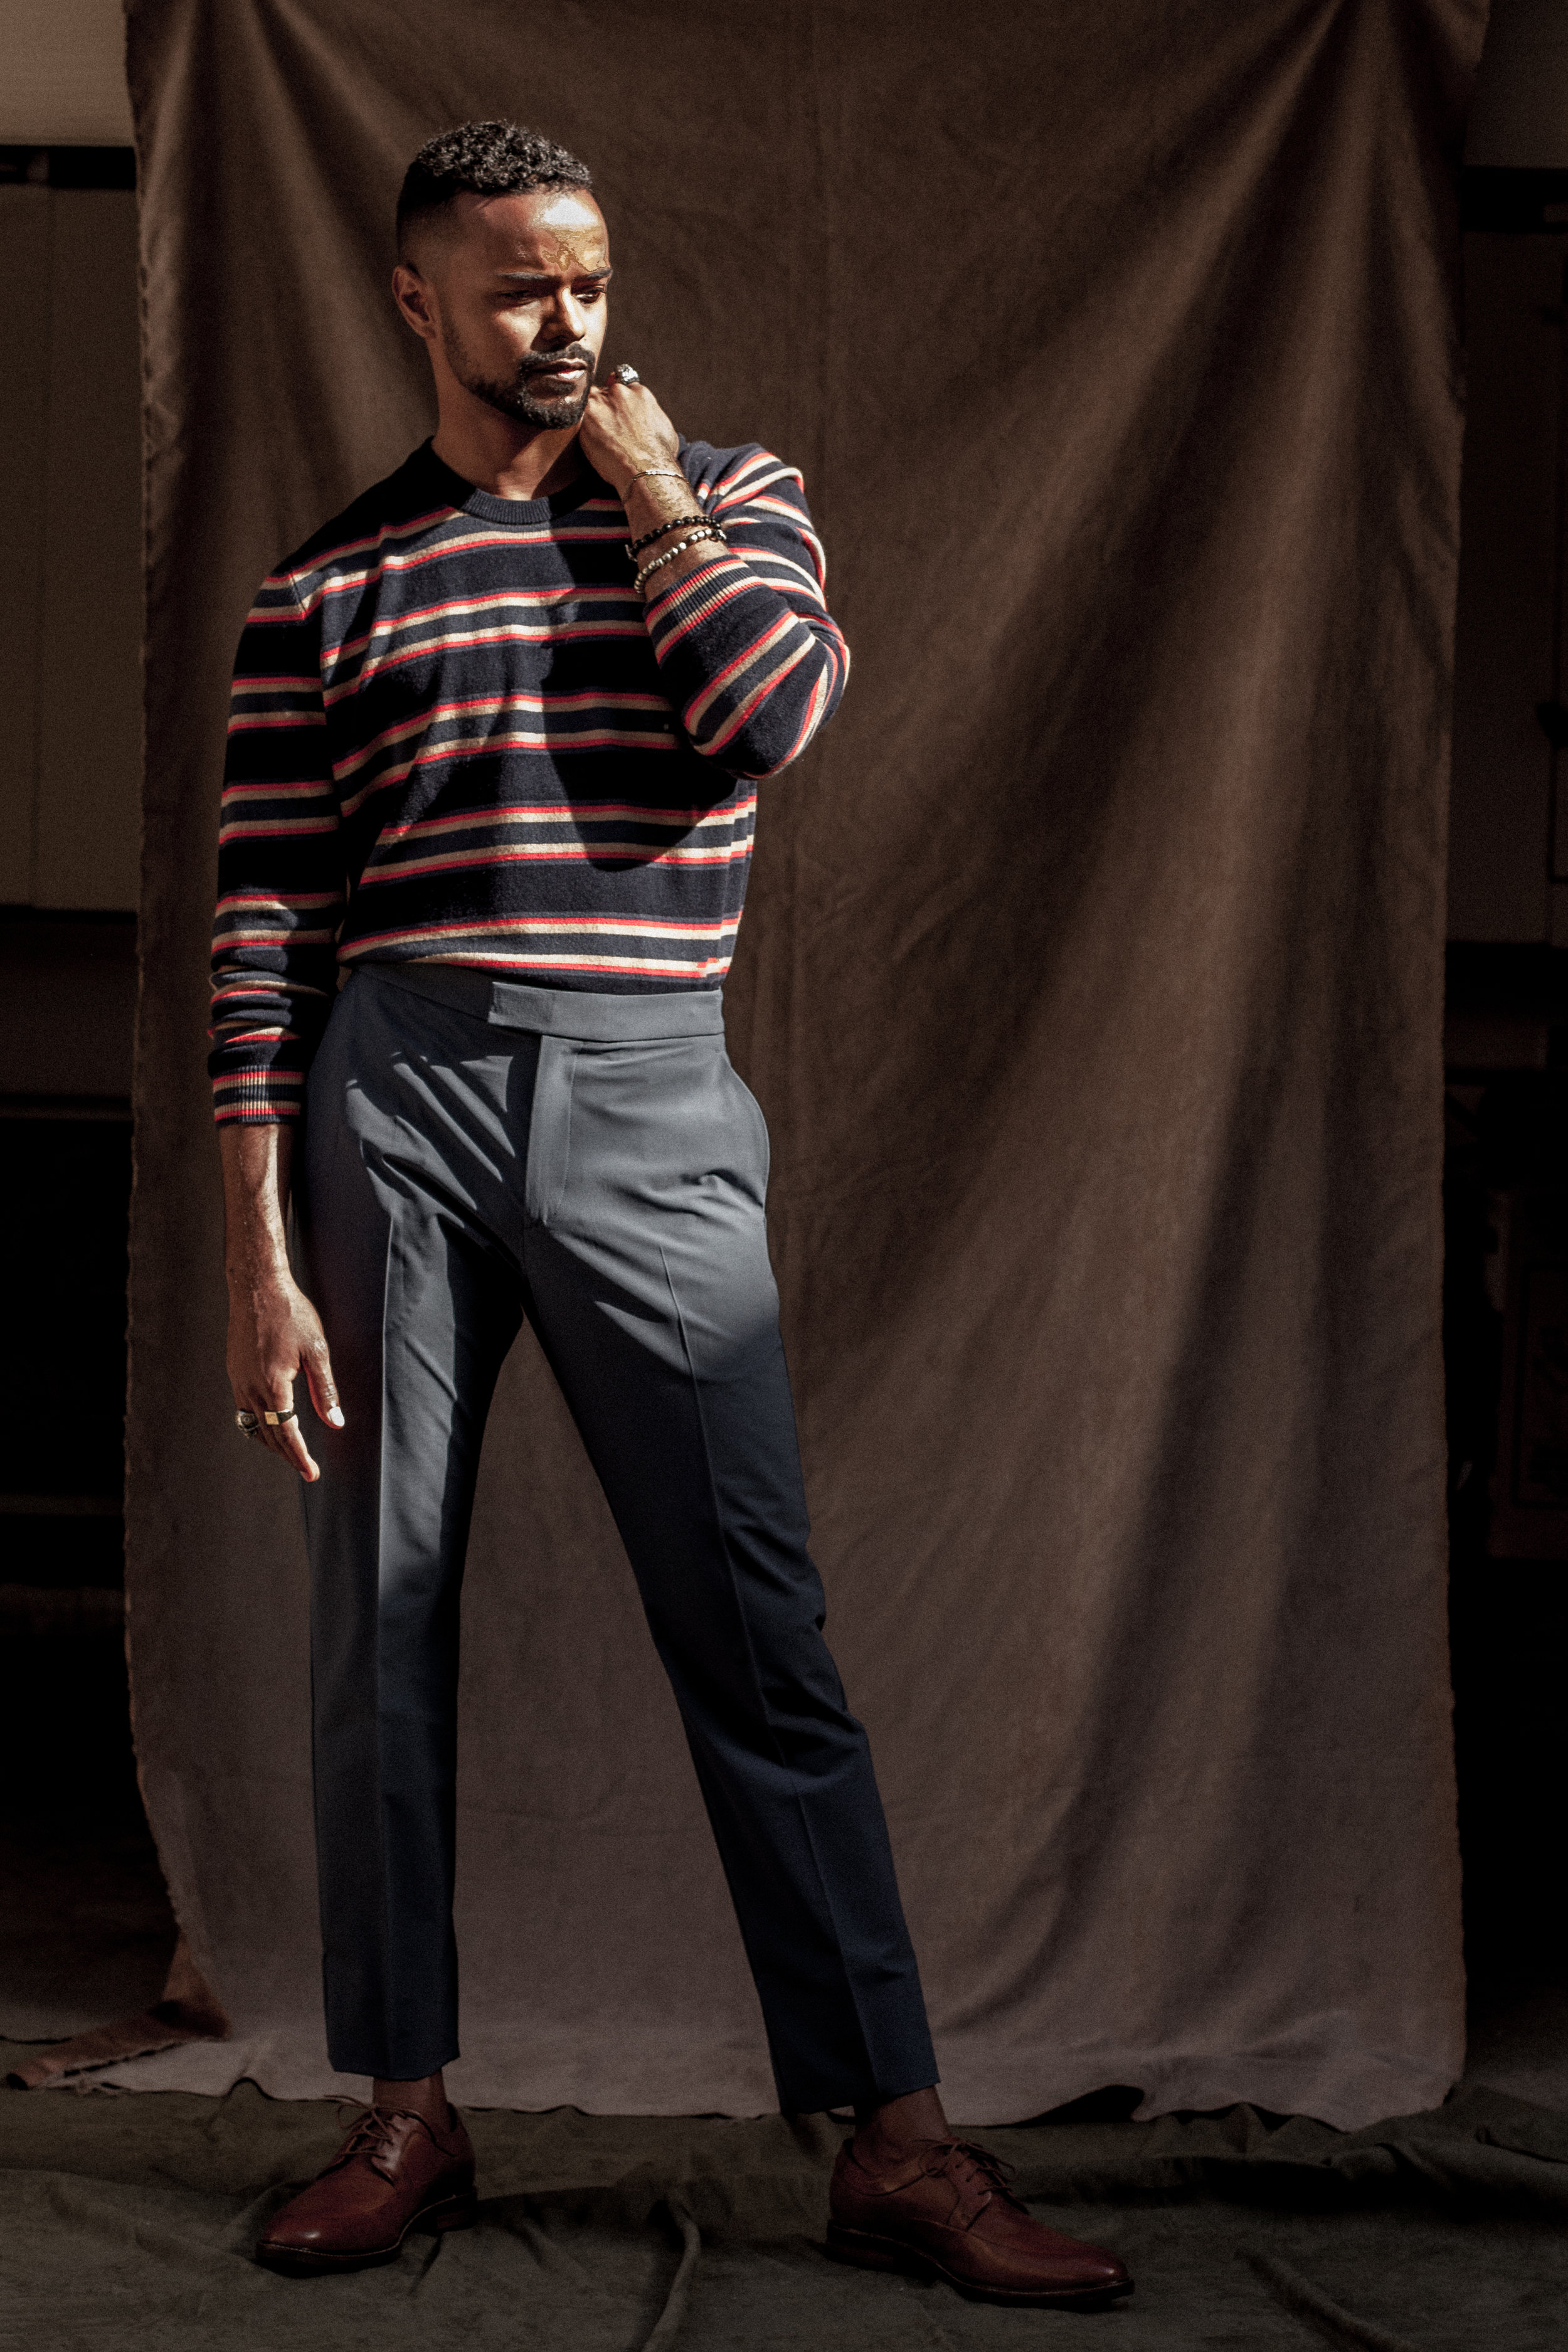 Sweater by   PAUL SMITH  ; Pants by   THEORY  ; Shoes by   COLE HAAN